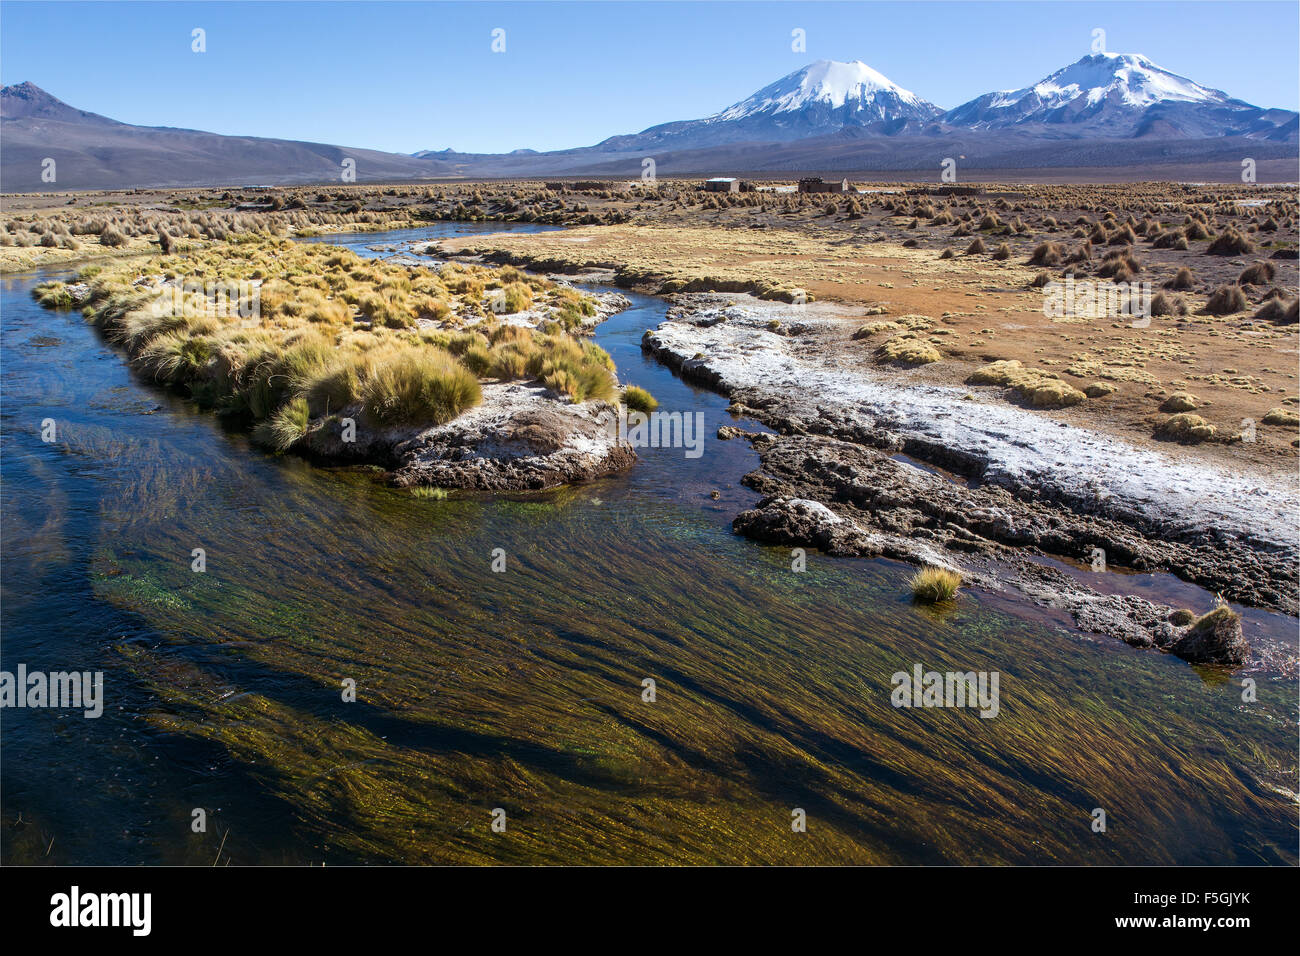 River and aquatic plants in front of snowcapped volcanoes Pomerape and Parinacota, Sajama National Park - Stock Image